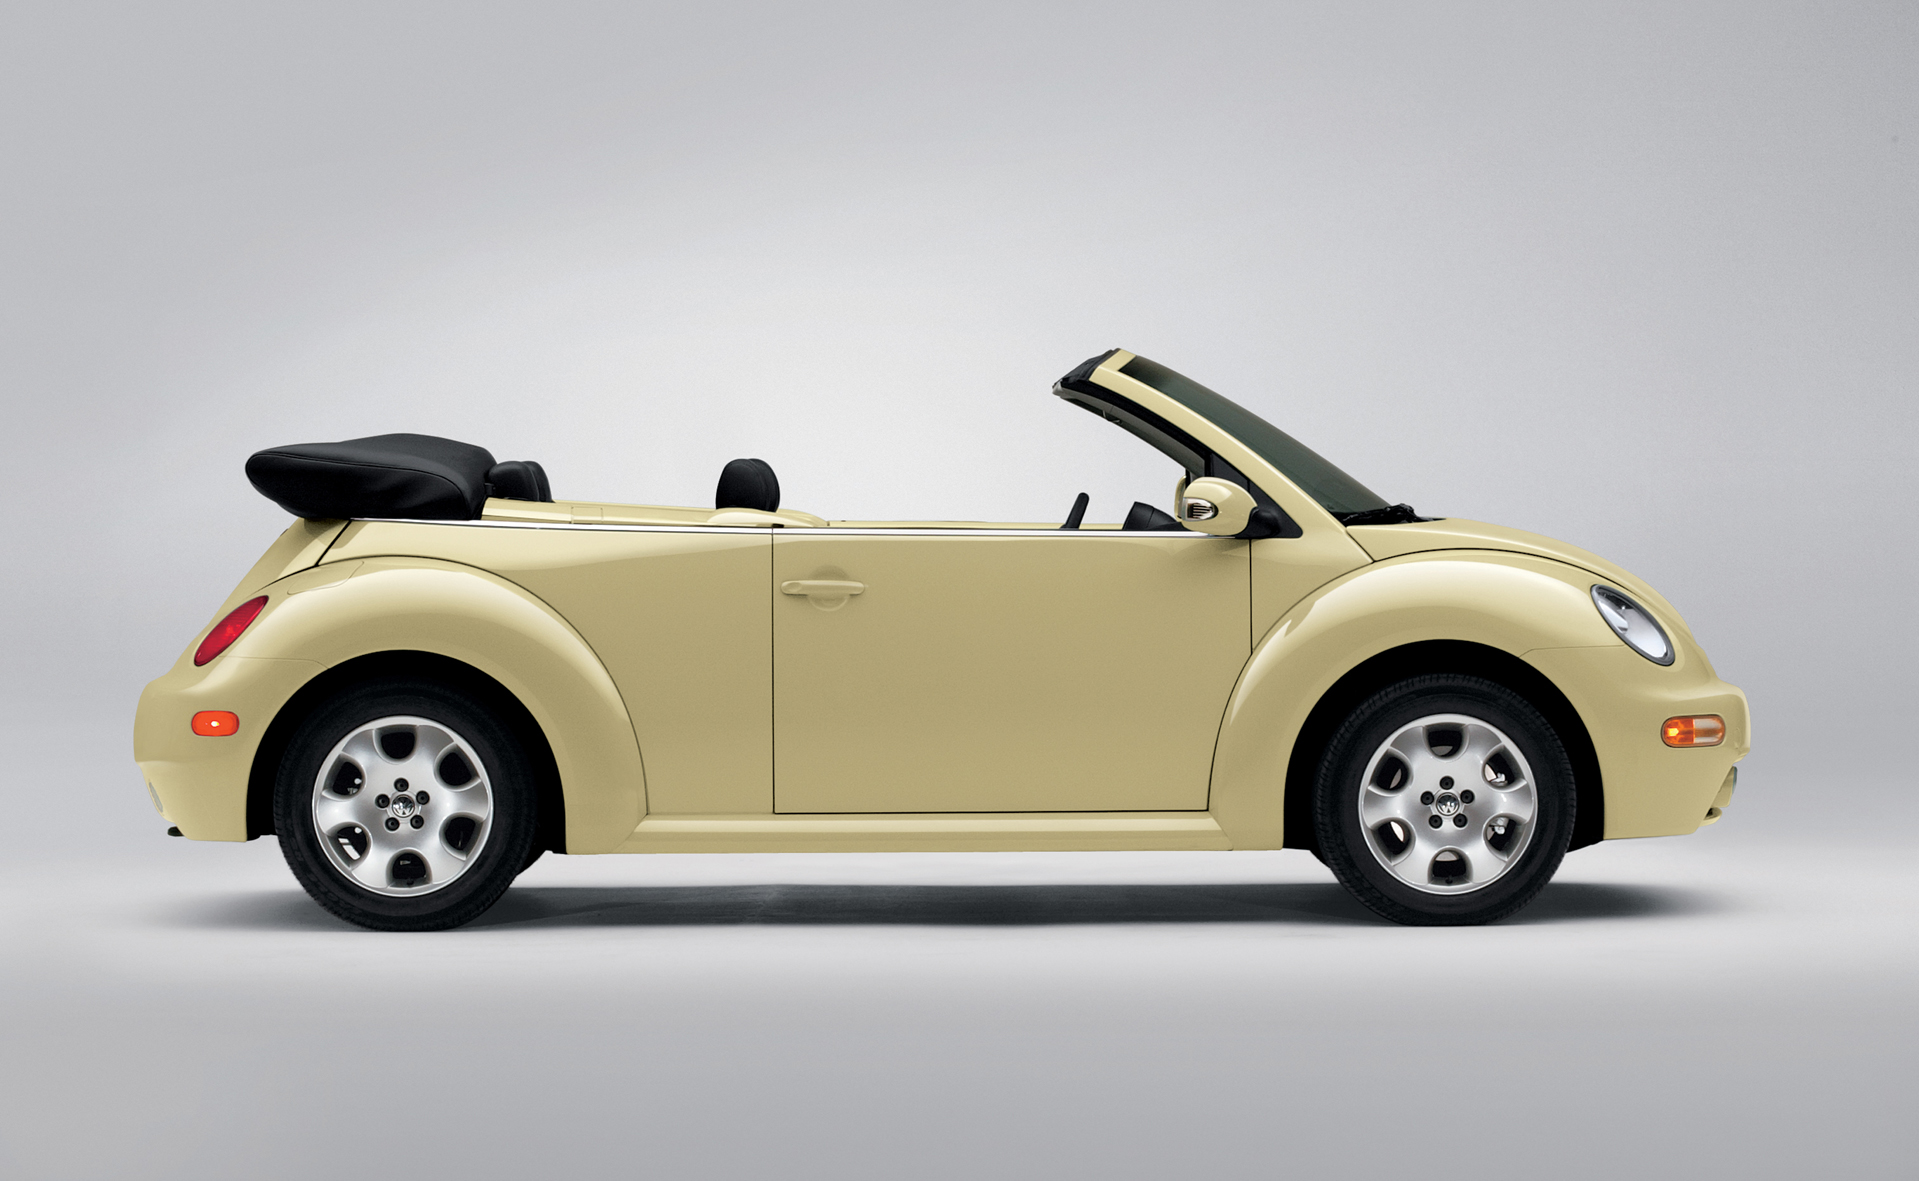 vw new beetle cabrio technical details history photos on better parts ltd. Black Bedroom Furniture Sets. Home Design Ideas